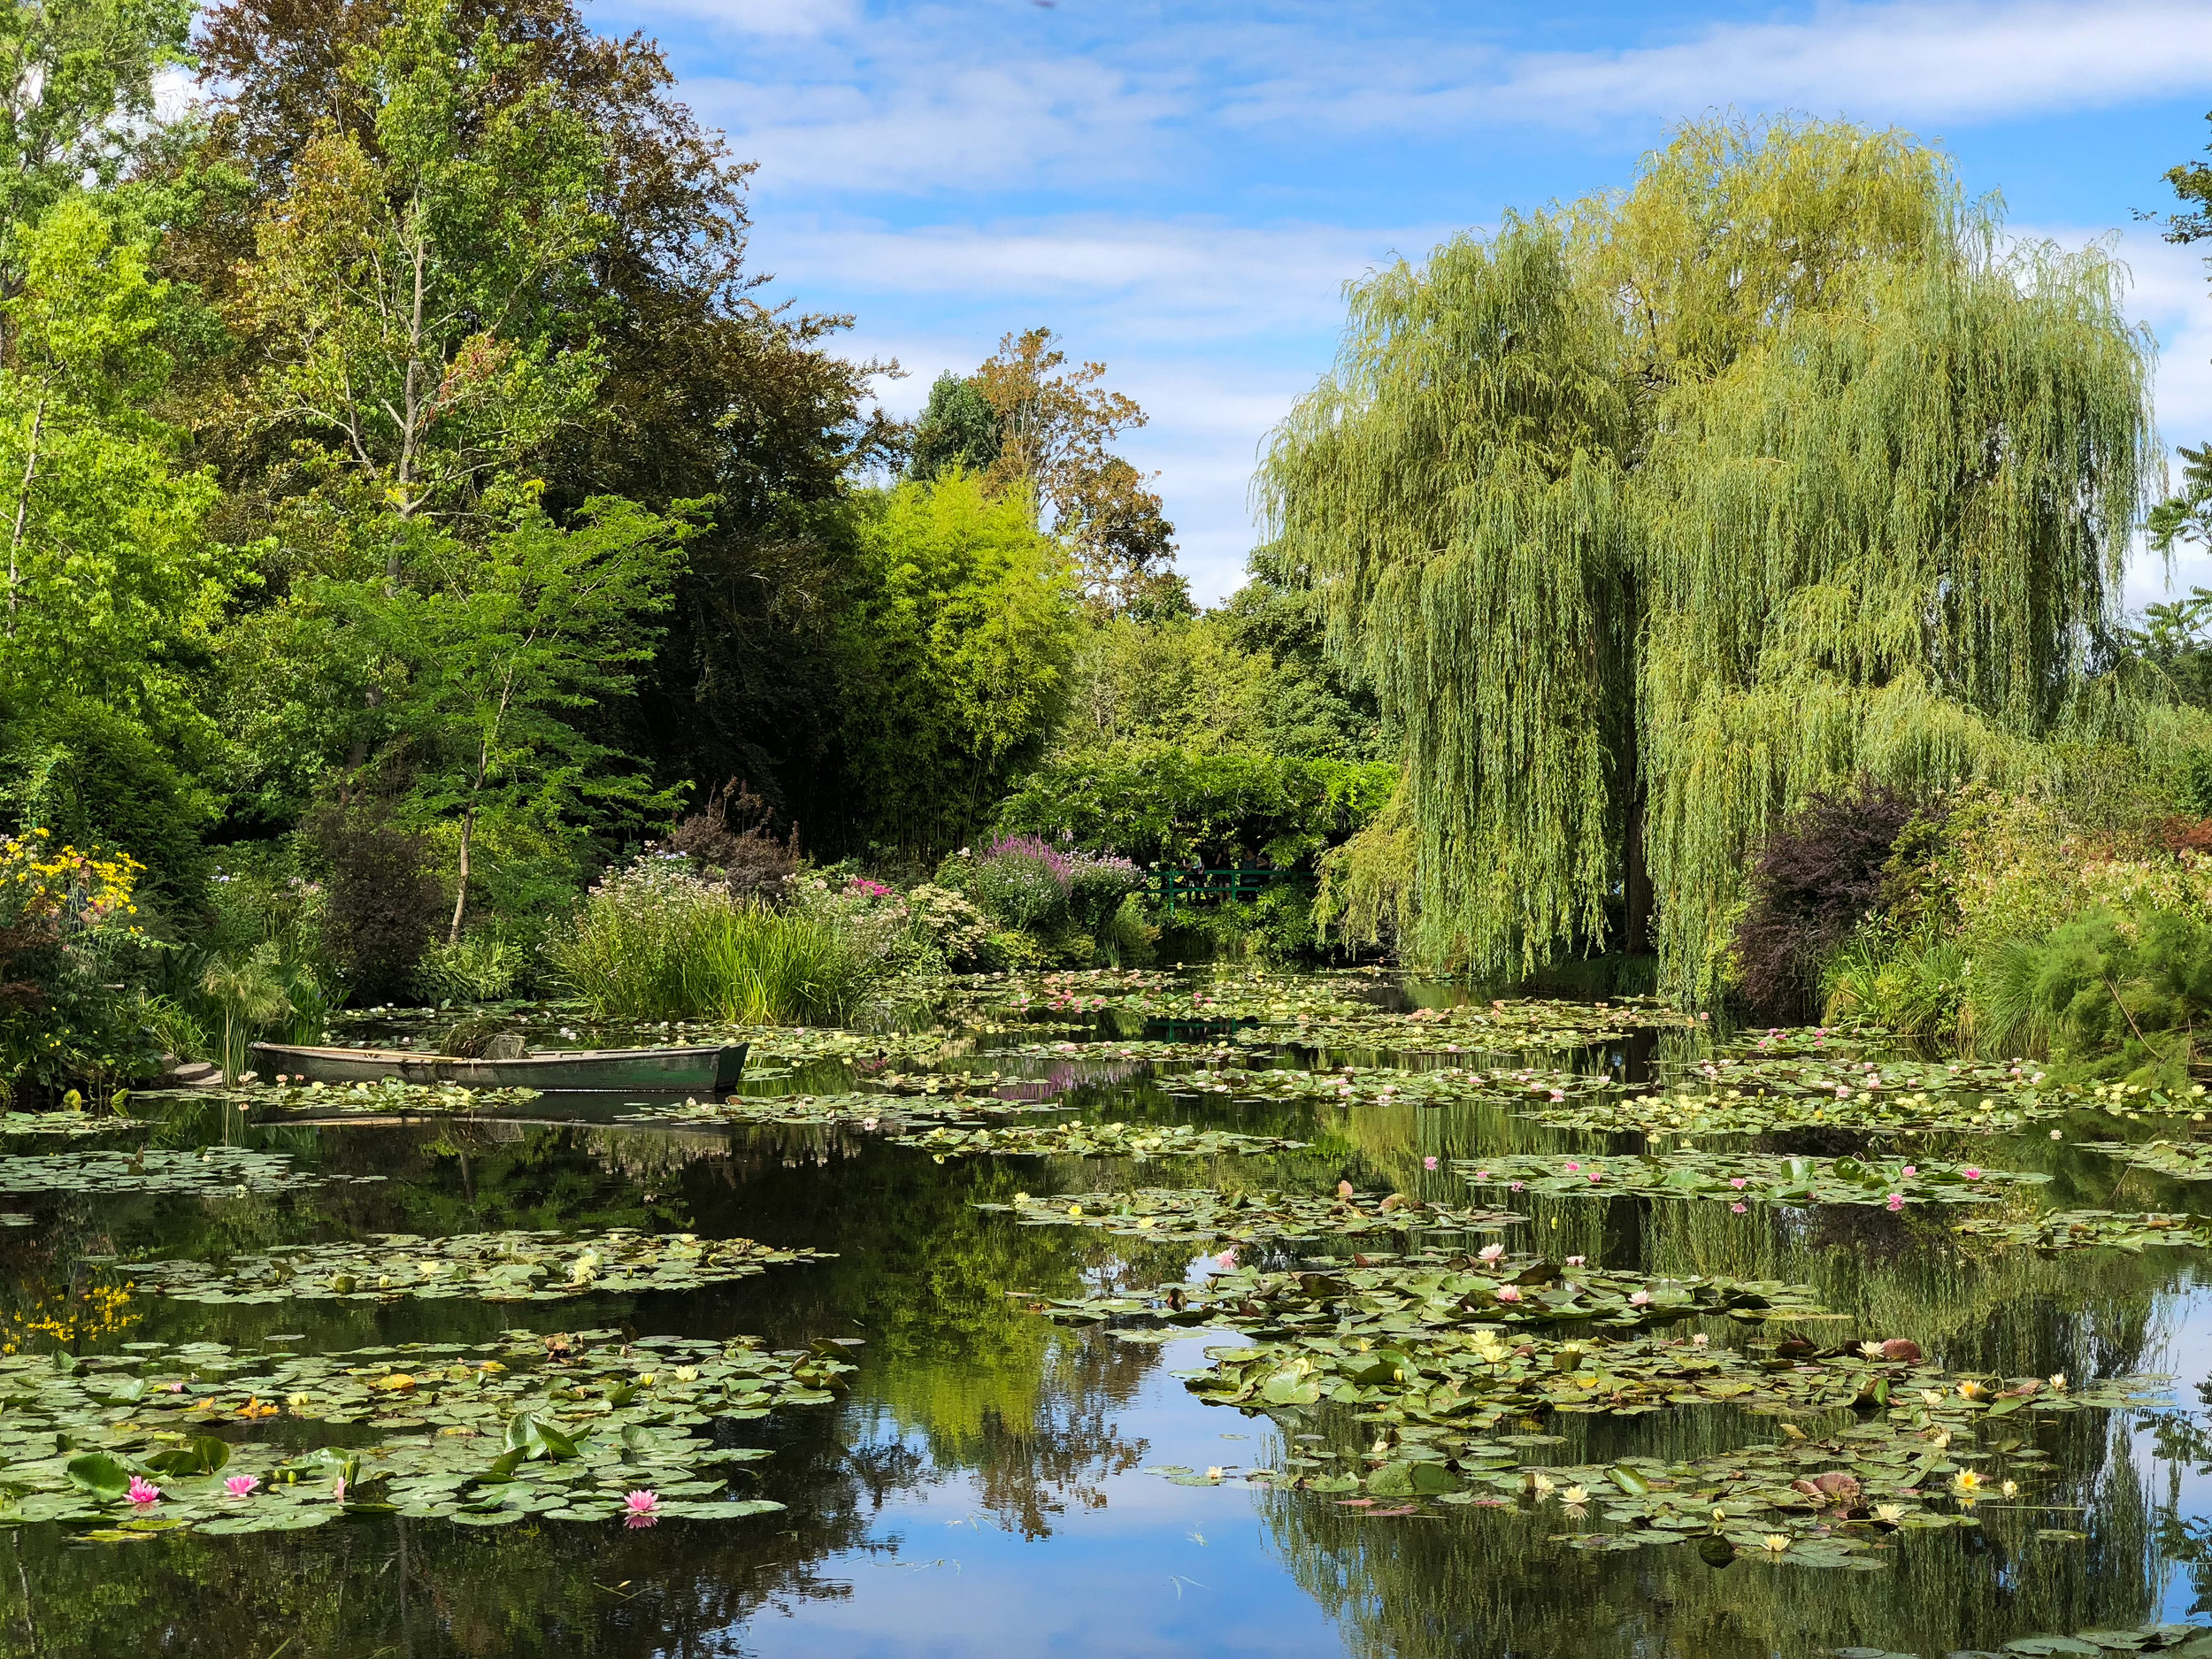 Giverny, France (13 images)